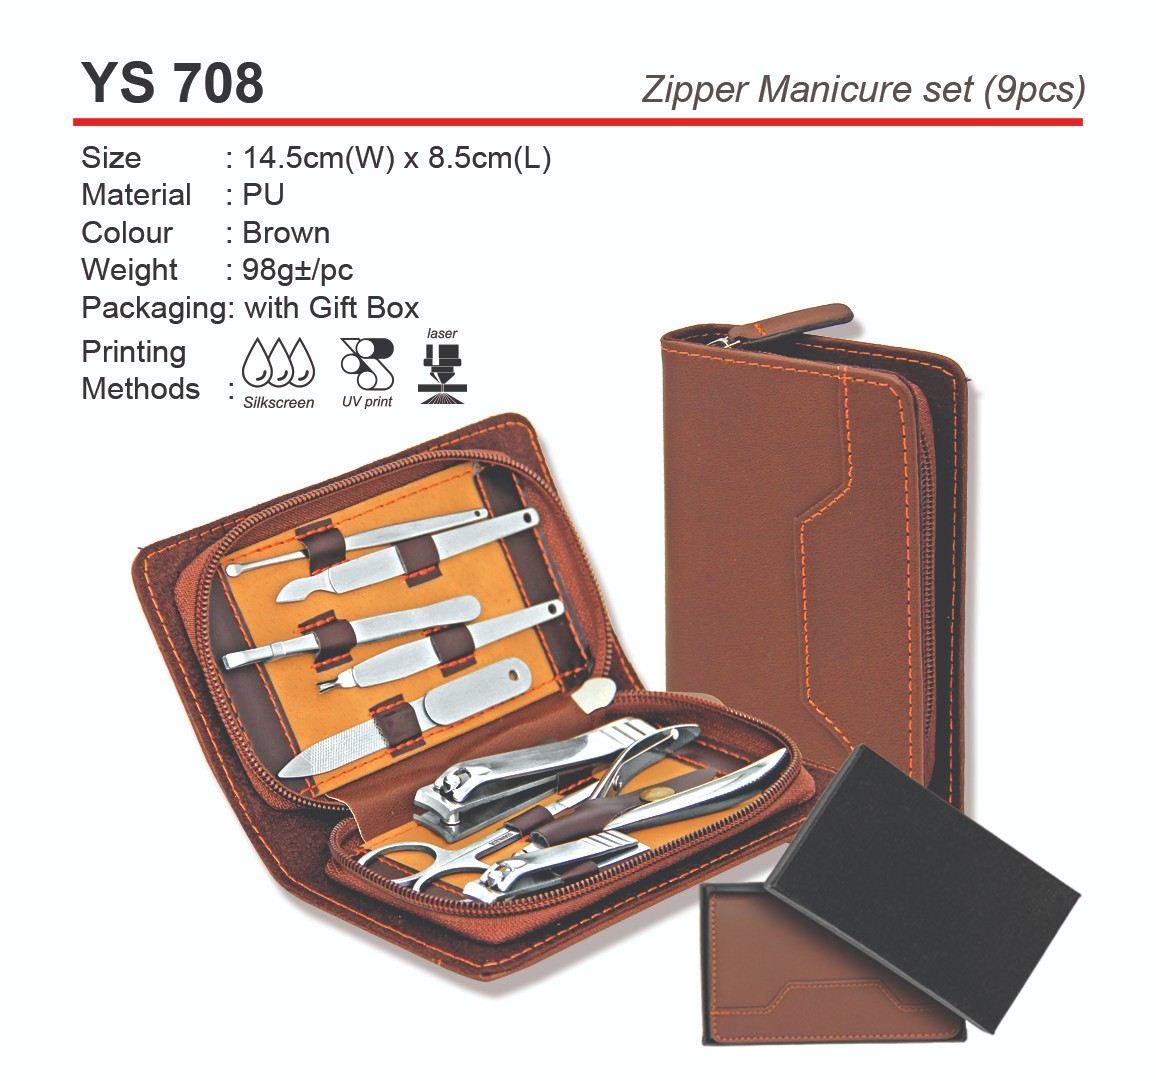 YS708  Zipper Manicure Set (9pcs)